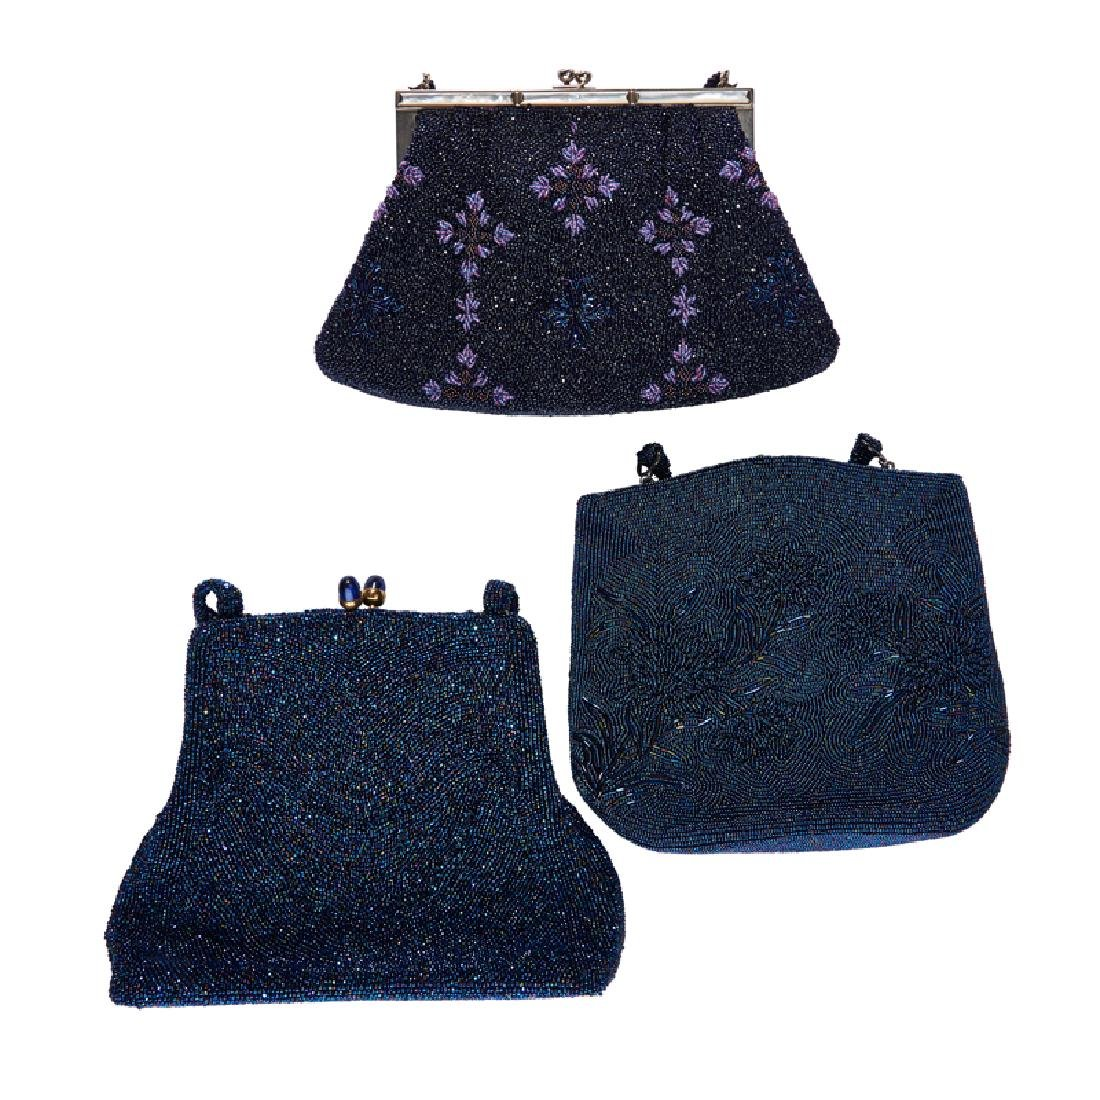 GROUP OF VINTAGE BEADED EVENING BAGS